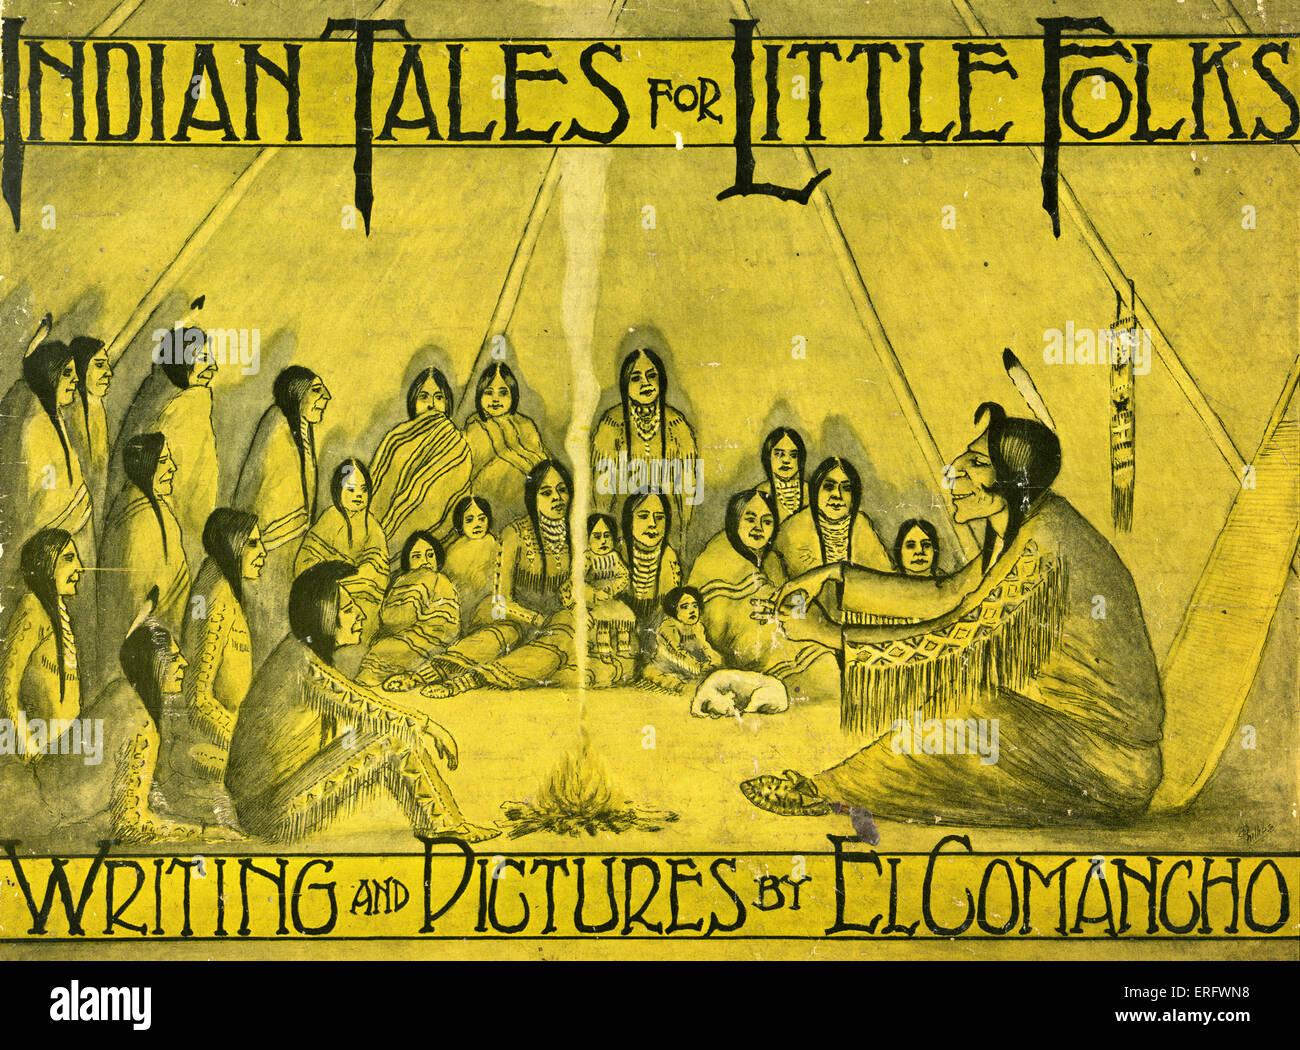 Indian Tales for Little Folks by W. S. Phillips (El Comancho 1867 -1940). Illustrations by the author. Published - Stock Image